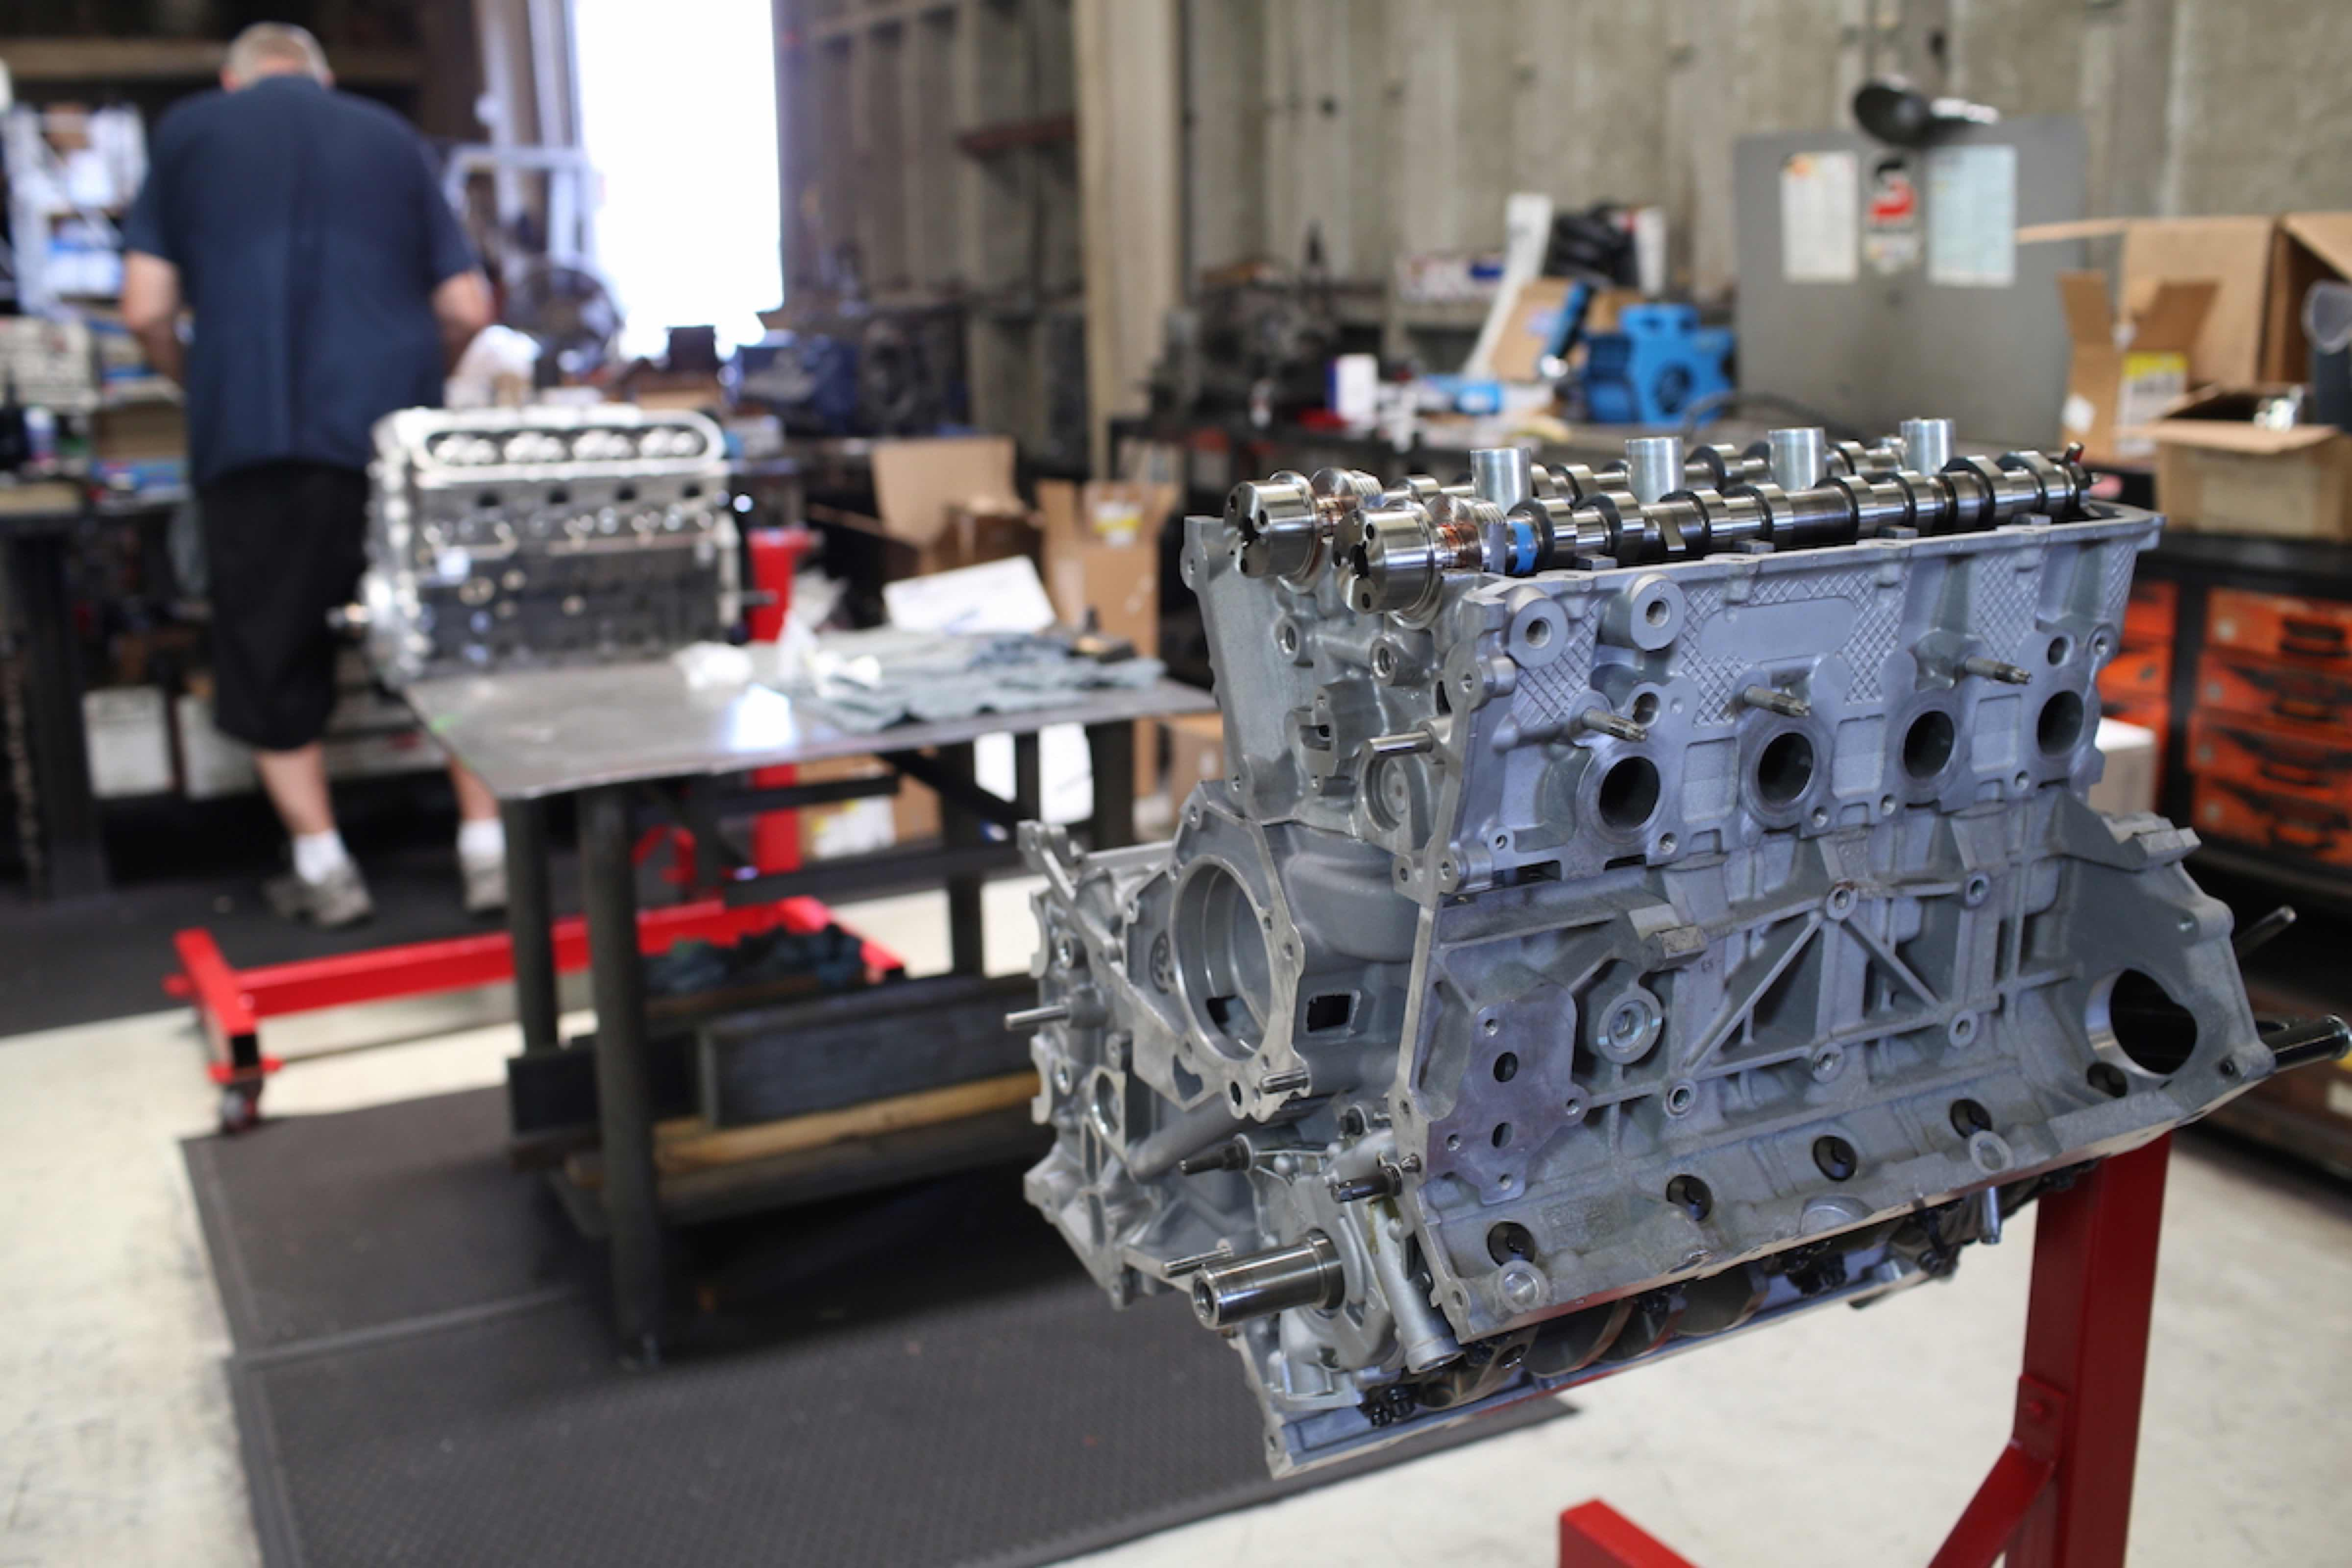 Preview: LS3 vs Coyote Budget Engine Shootout--Update To The Update!